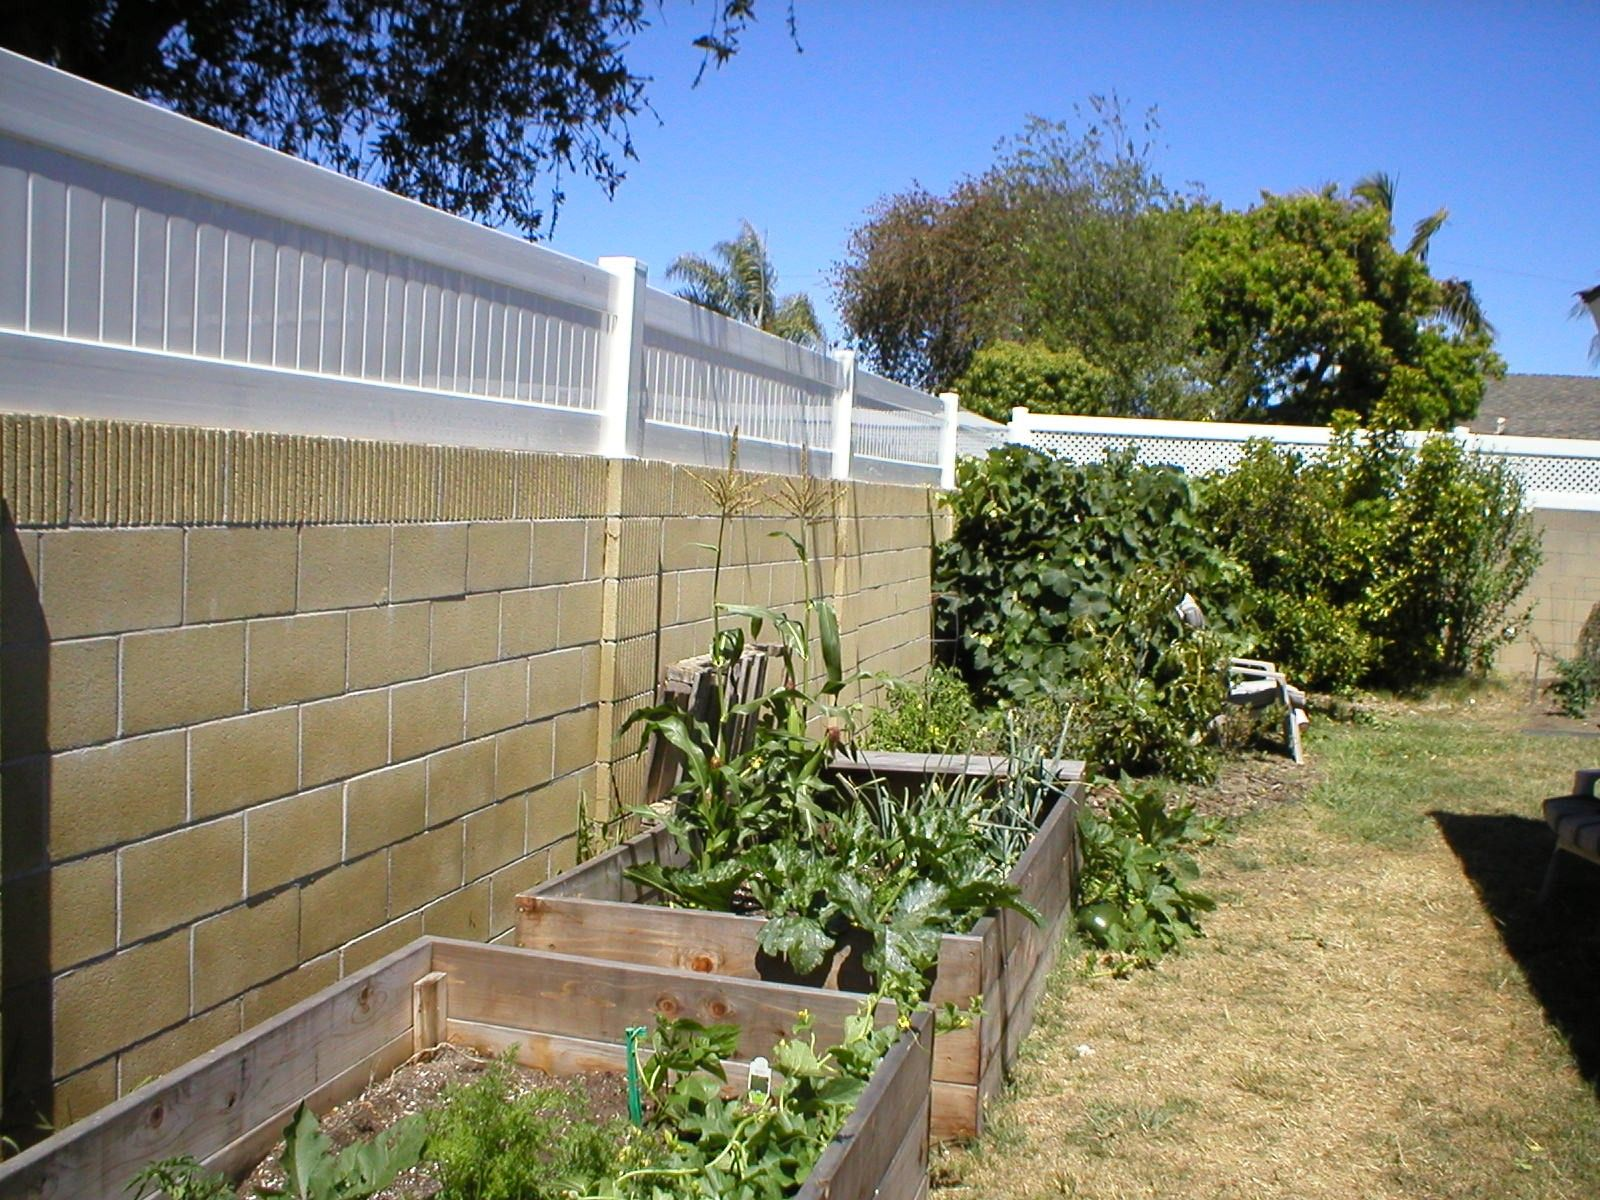 Vinyl Does A Very Good Job Attaching To The Top Of A Block Wall The Posts Are Hollow And We Set Steel In The Wall And Backyard Fences Backyard Concrete Patio